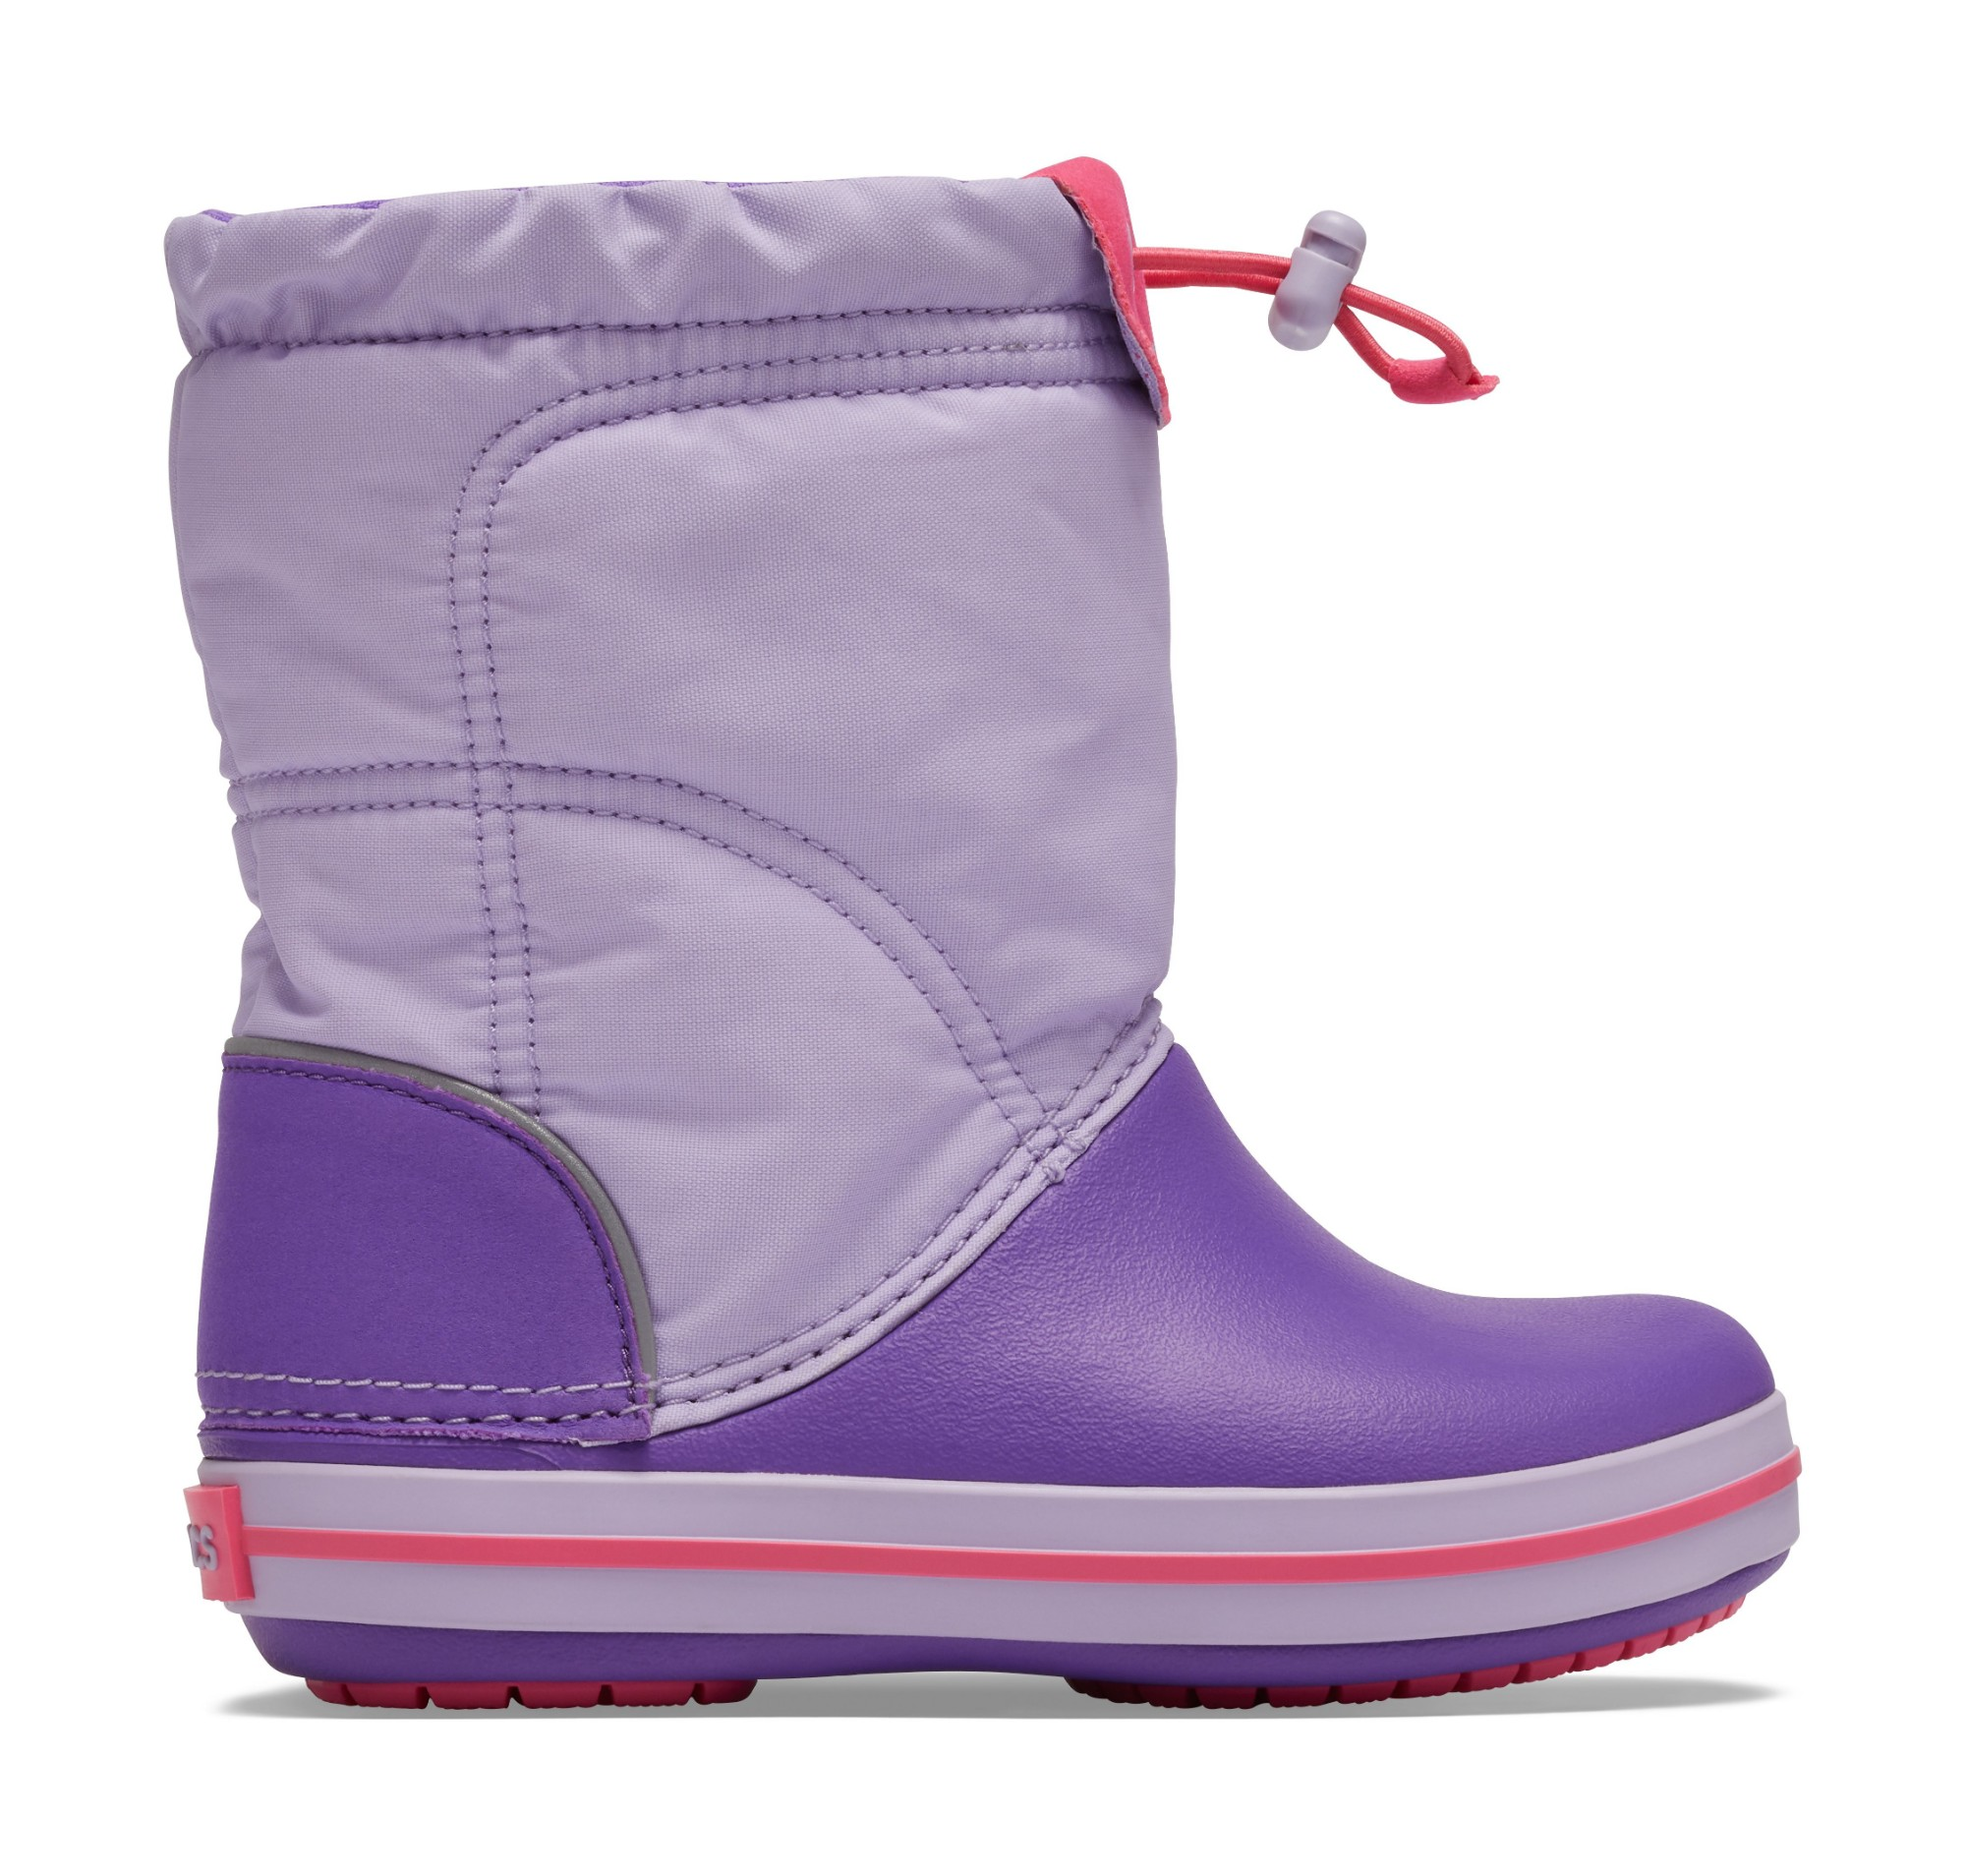 Crocs™ Kids' Crocband Lodgepoint Boot Lavender/Neon Purple 30